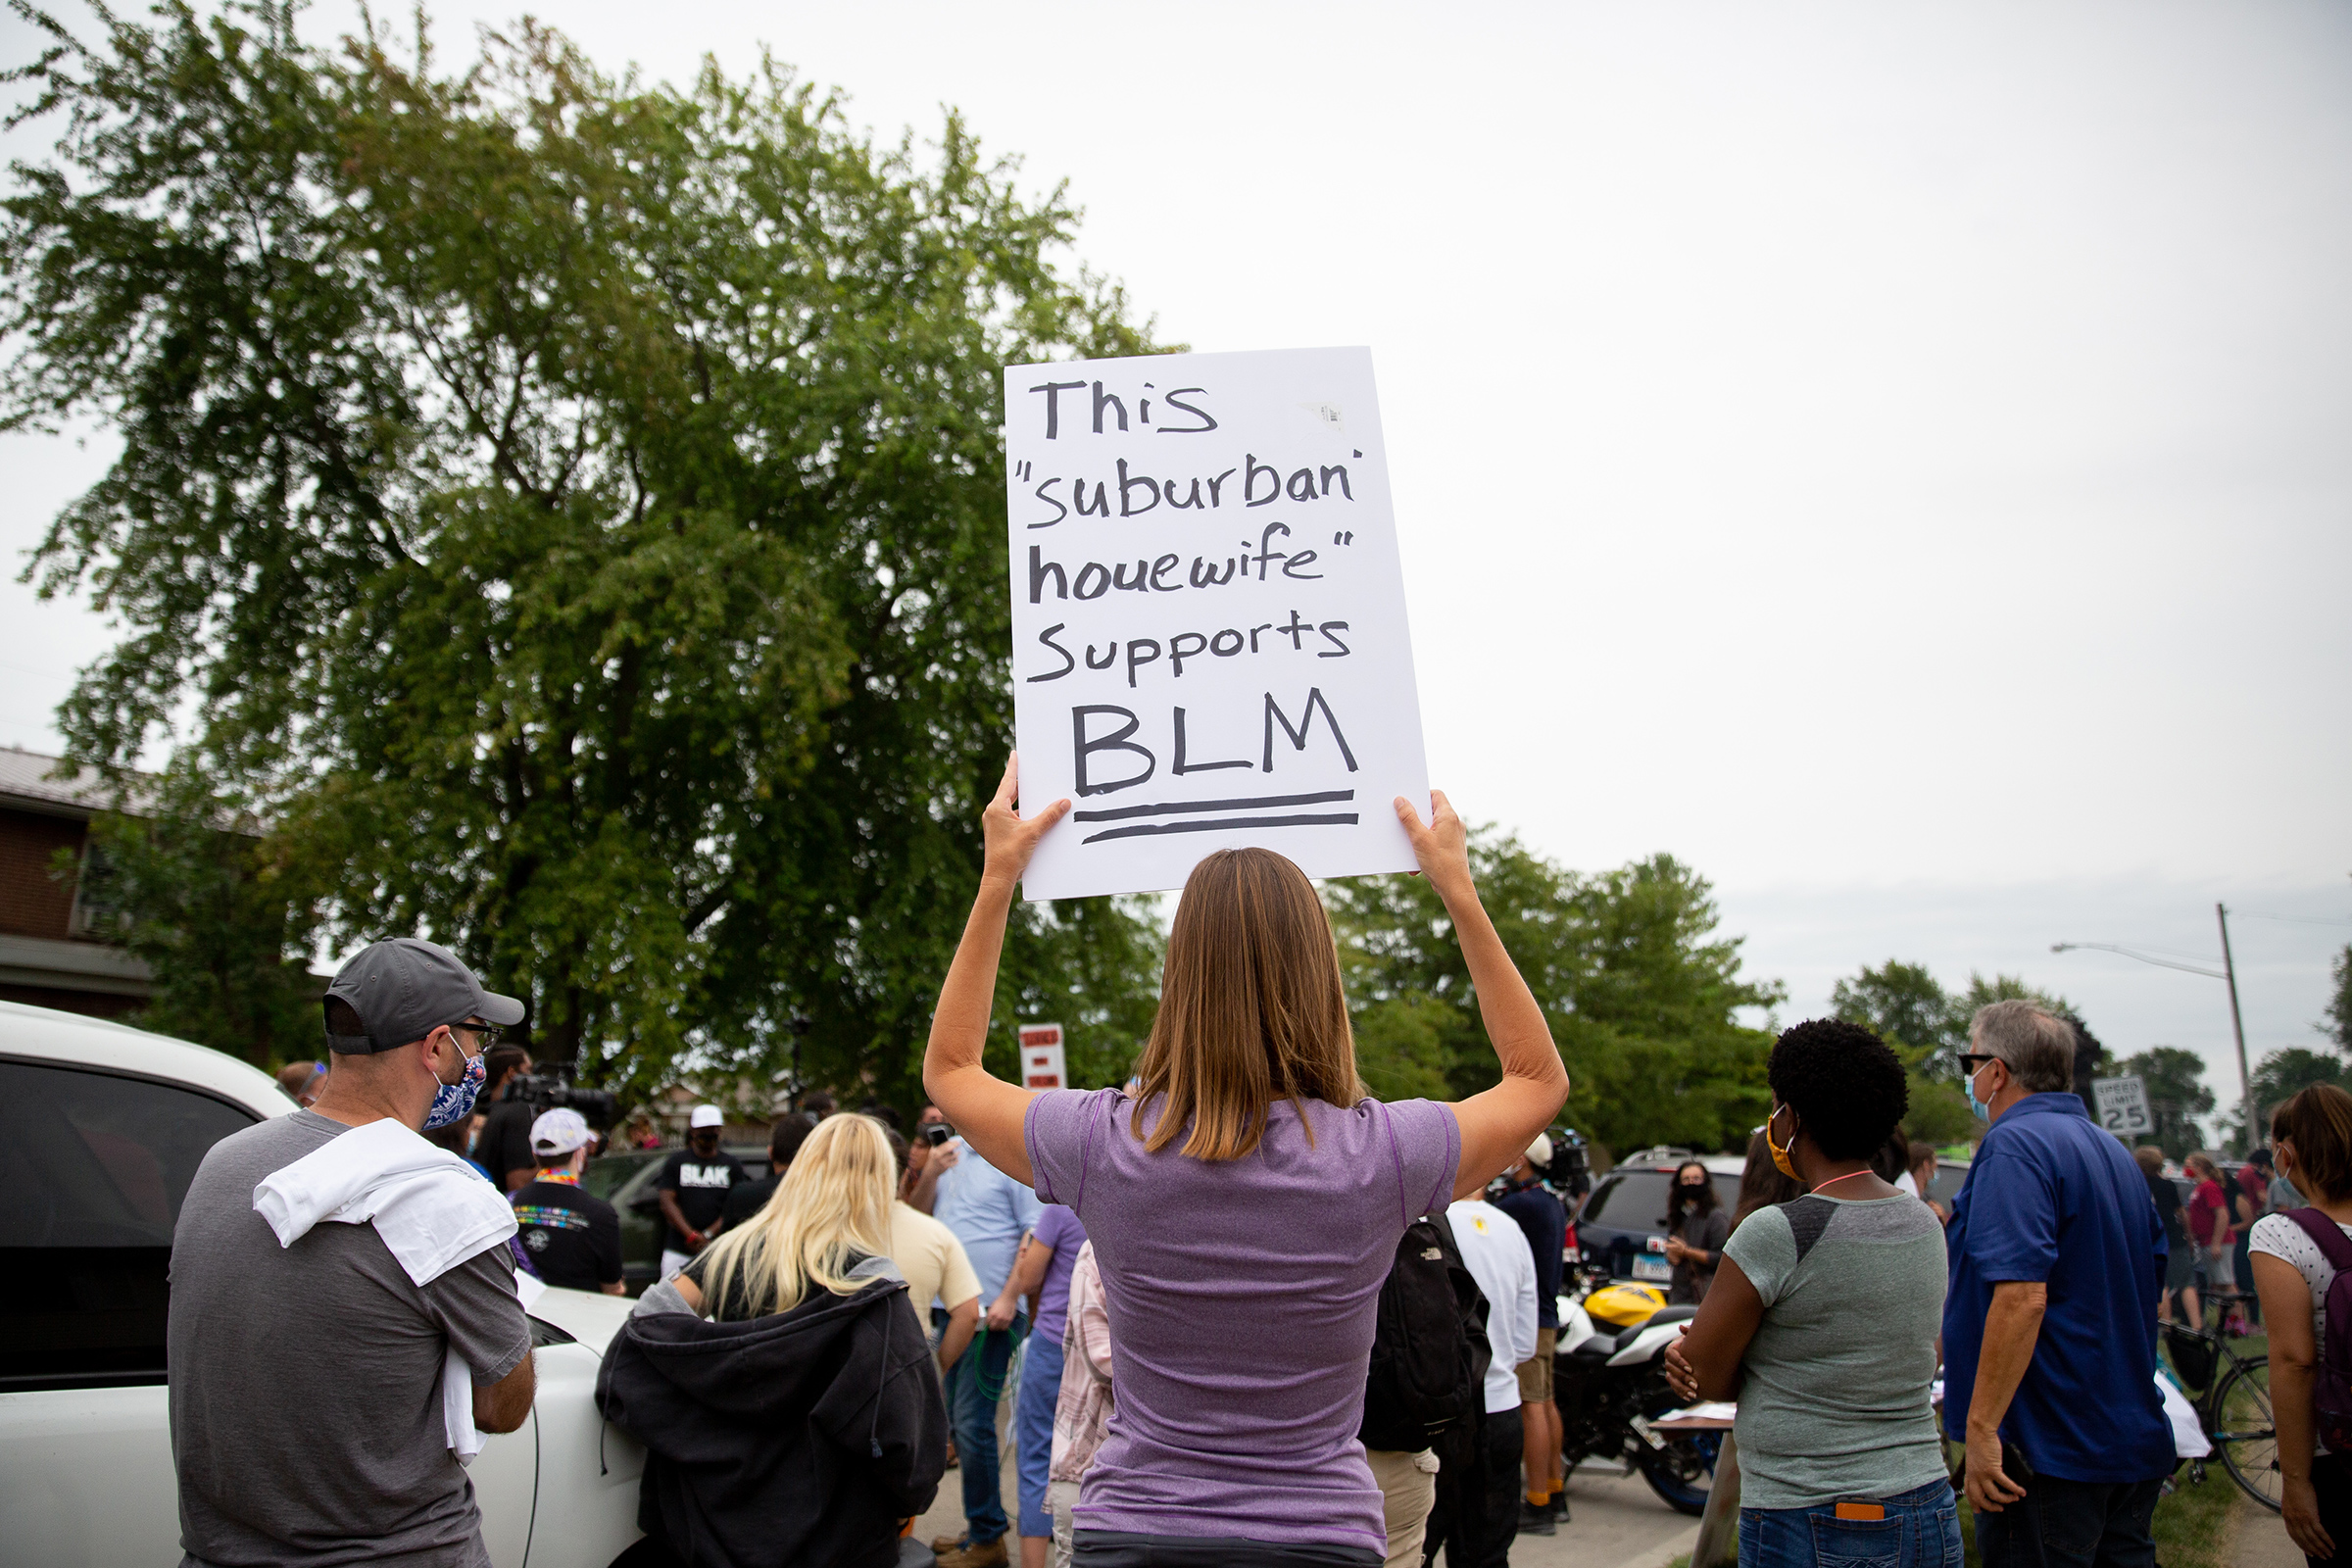 A Black Lives Matter supporter near the site where Jacob Blake was shot by police in Kenosha, Wis.